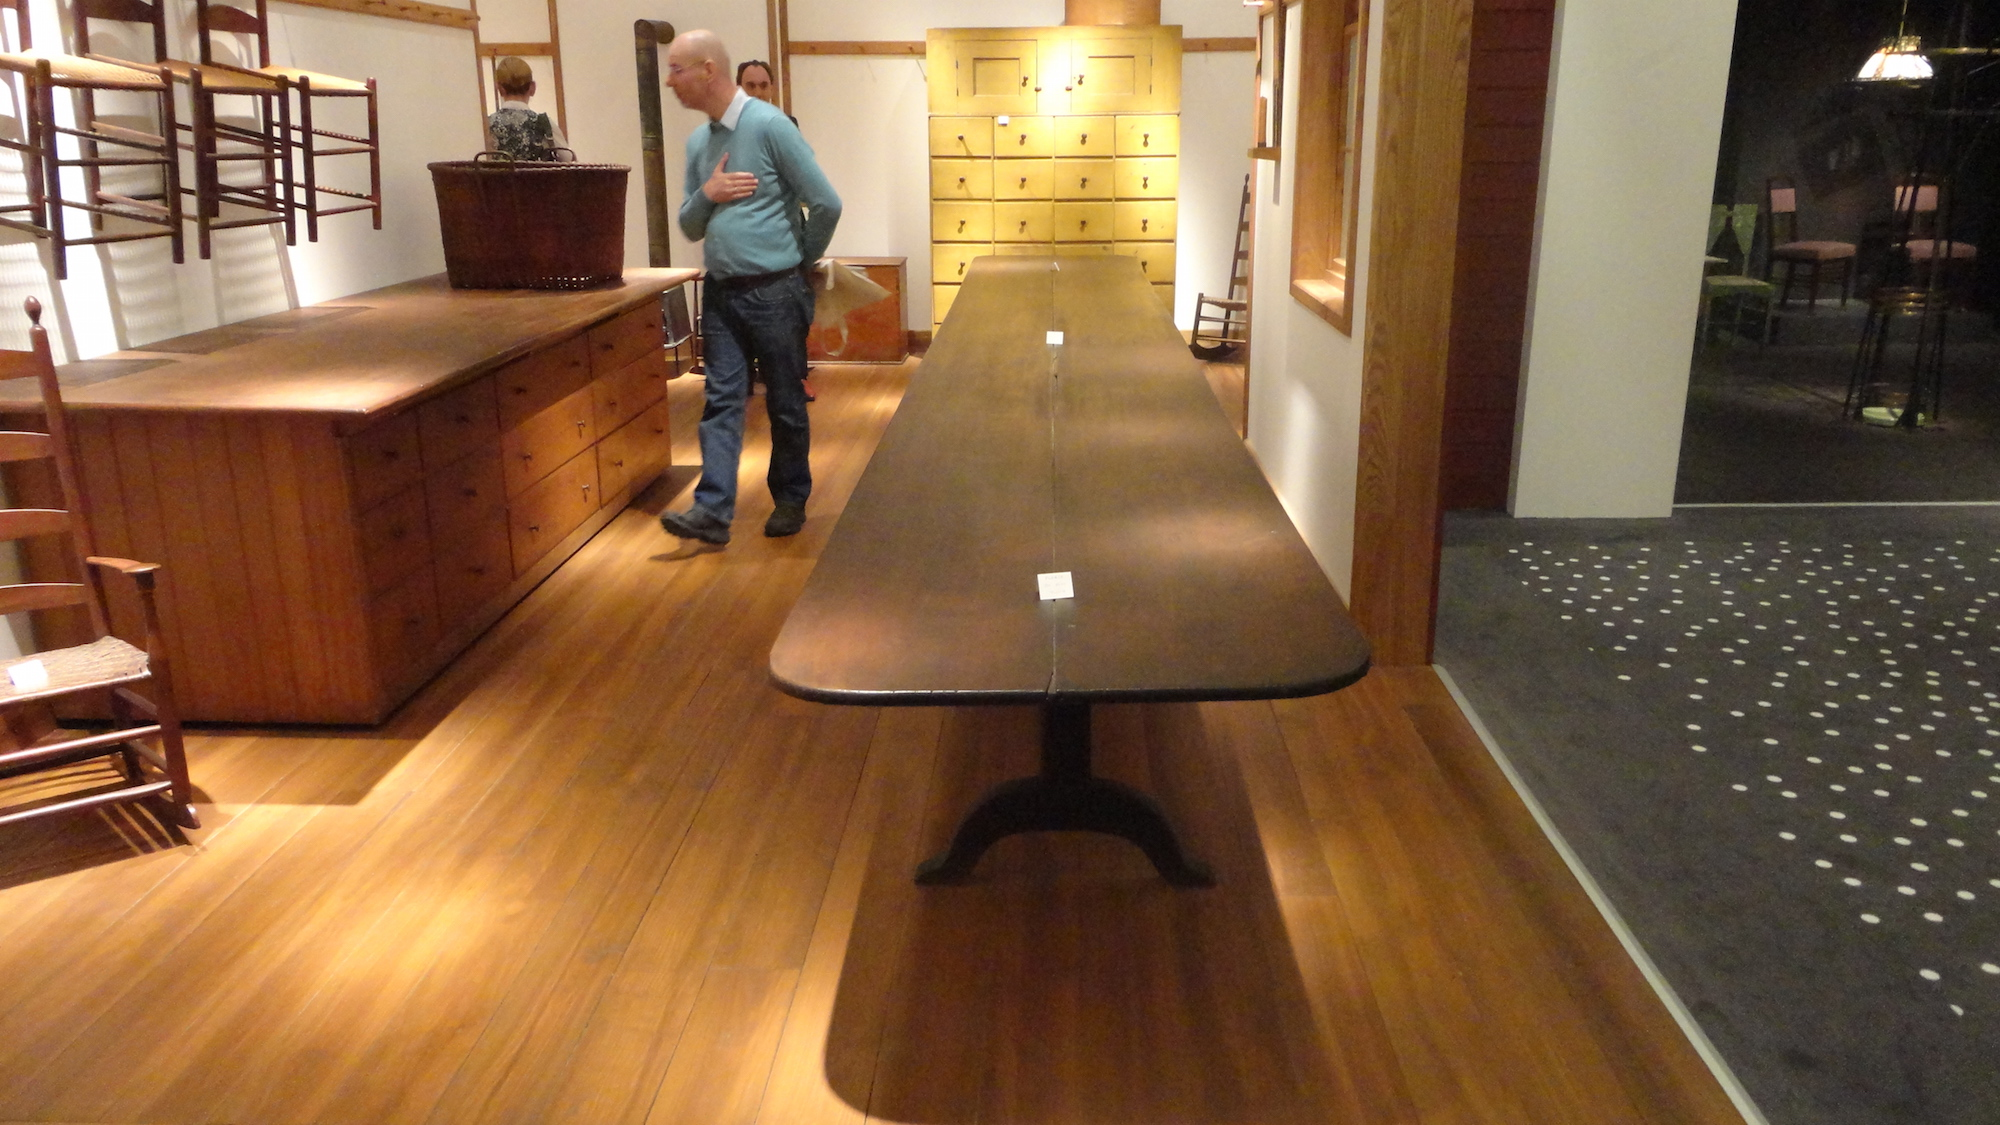 A shaker birch trestle table, Massachusetts, circa 1840, on the stand of François Laffanour's Galerie Downtown at the European Fine Art Fair in Maastricht in March, where it was priced at 250,000-300,000 euros ($270,000-$323,000). Image Auction Central News.